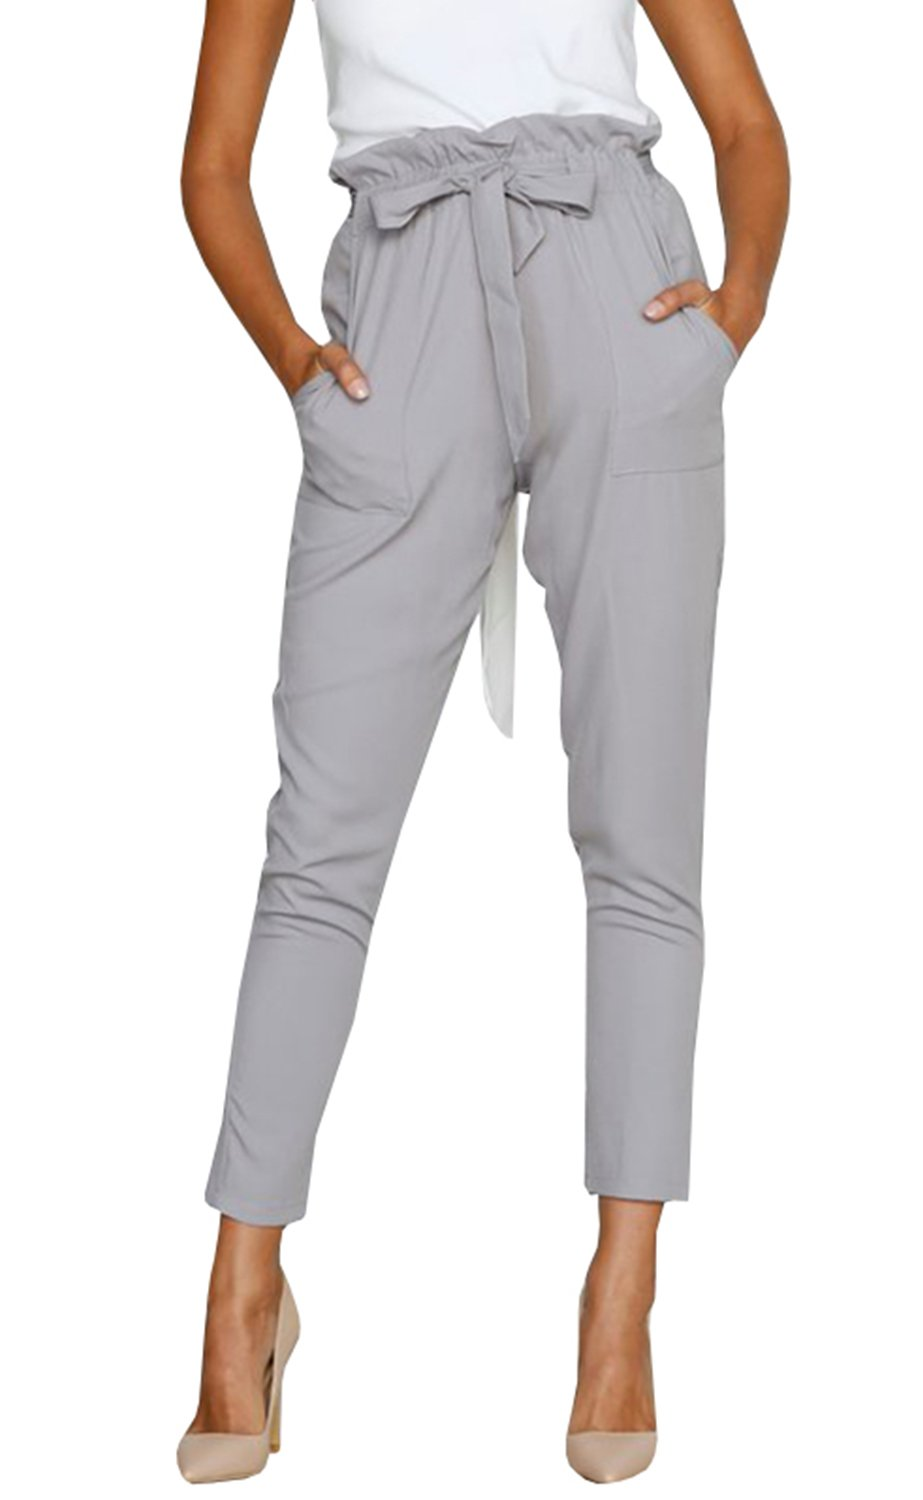 Geckatte Womens Casual Pants High Waisted Drawstring Work Pants Trousers with Pockets